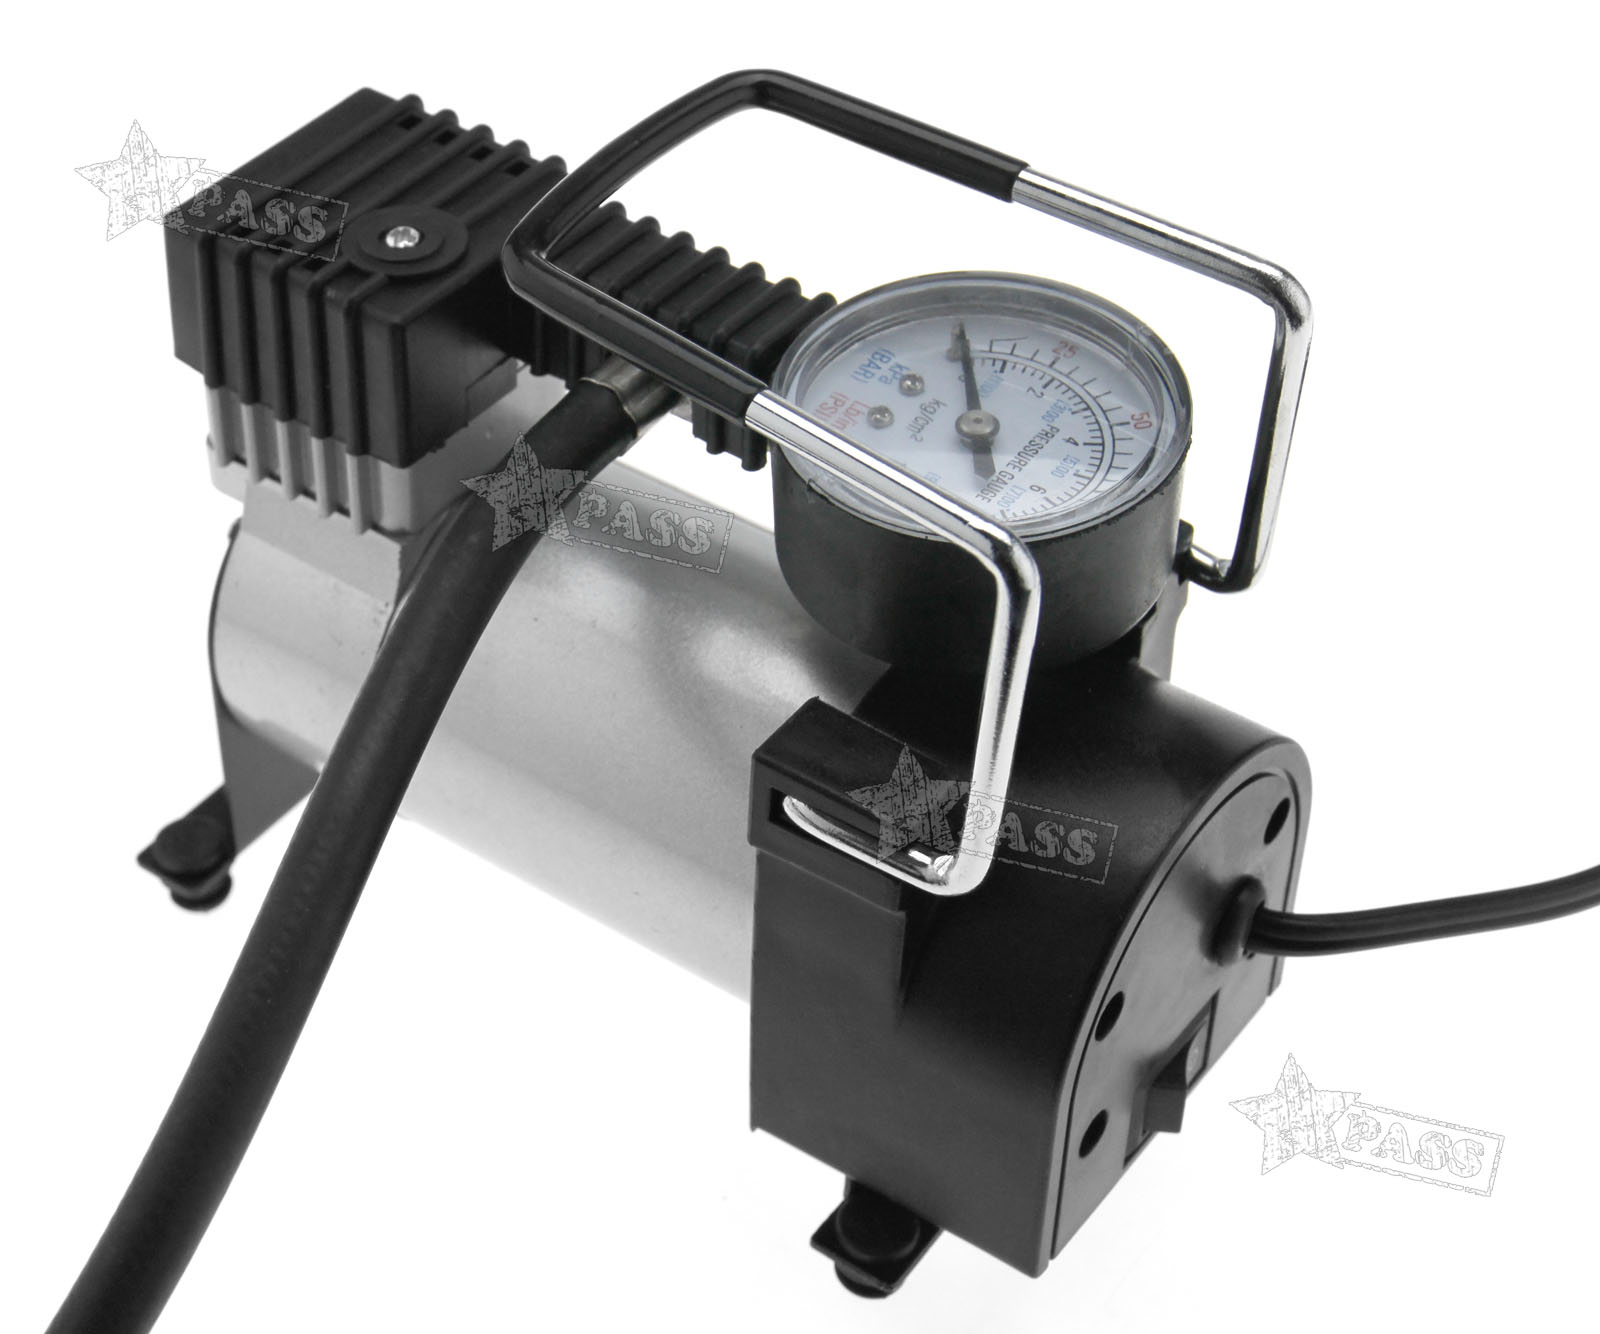 new portable auto tire inflator car tyre air compressor pump 12v 100psi ebay. Black Bedroom Furniture Sets. Home Design Ideas